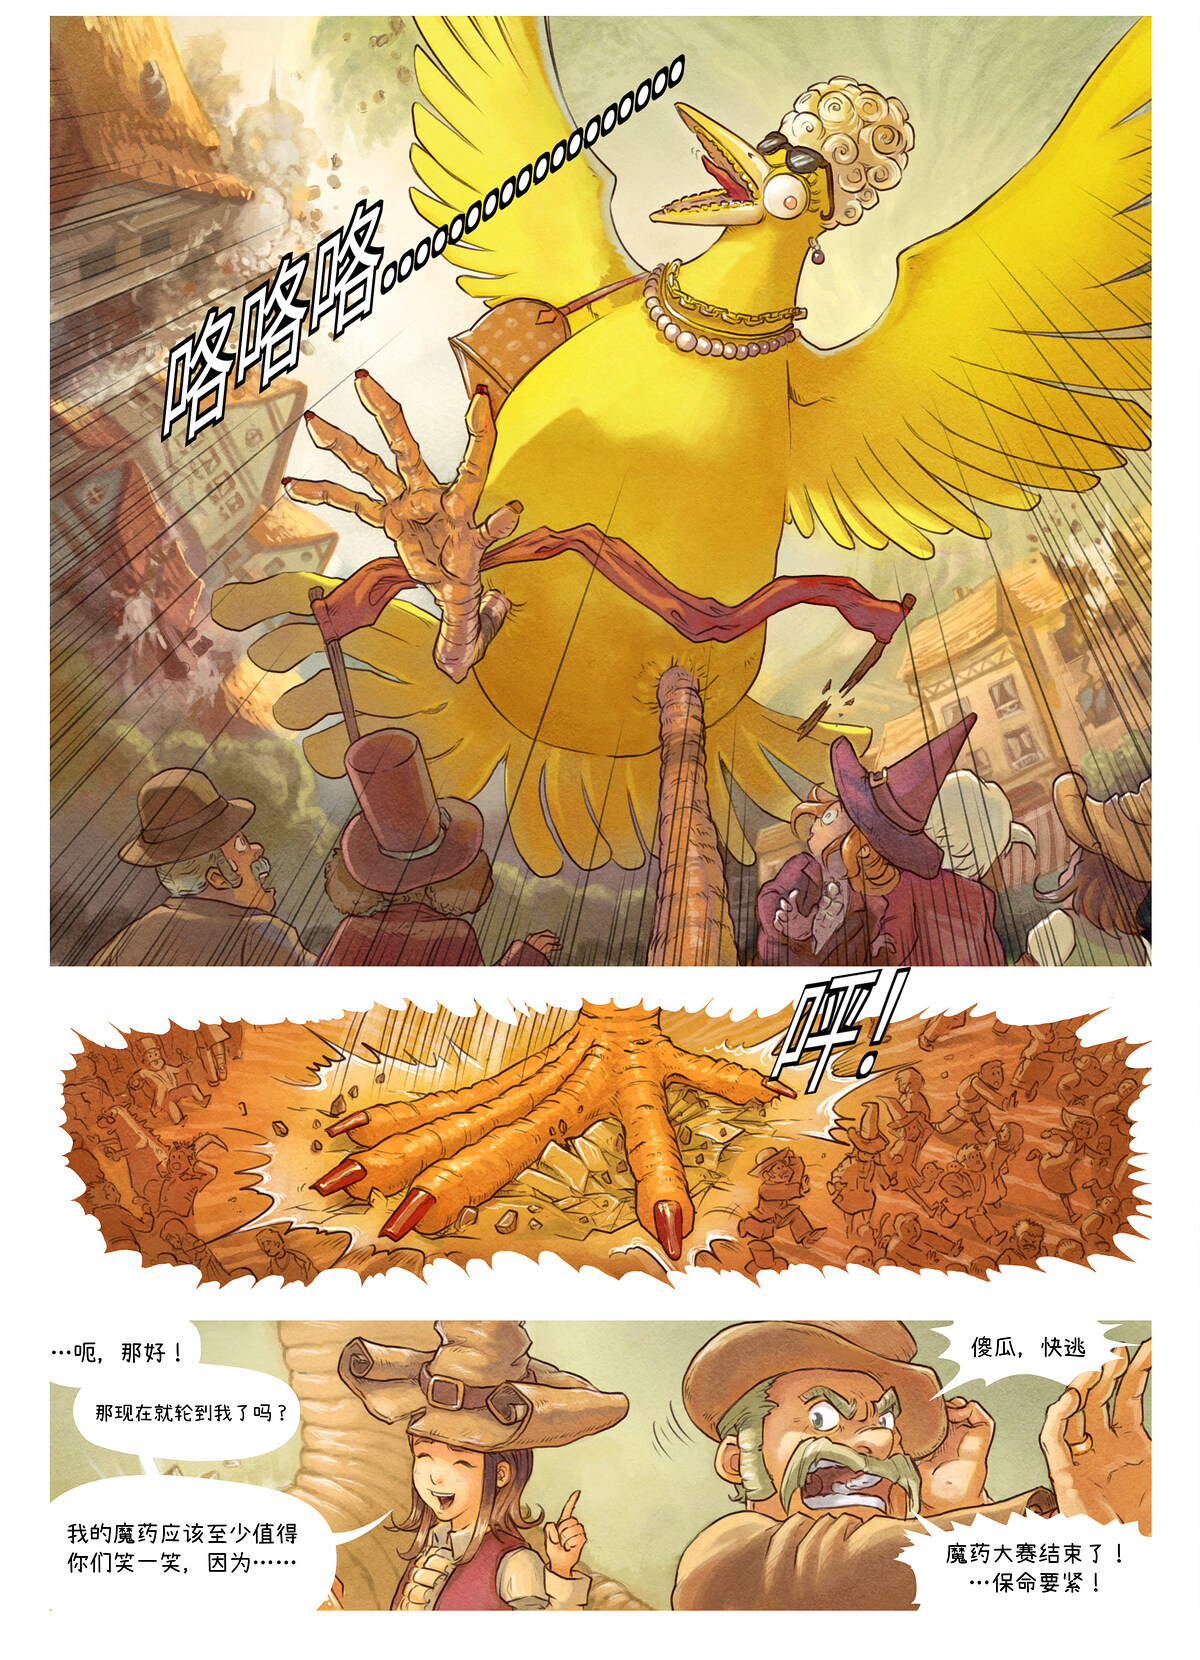 A webcomic page of Pepper&Carrot, 漫画全集 6 [cn], 页面 7